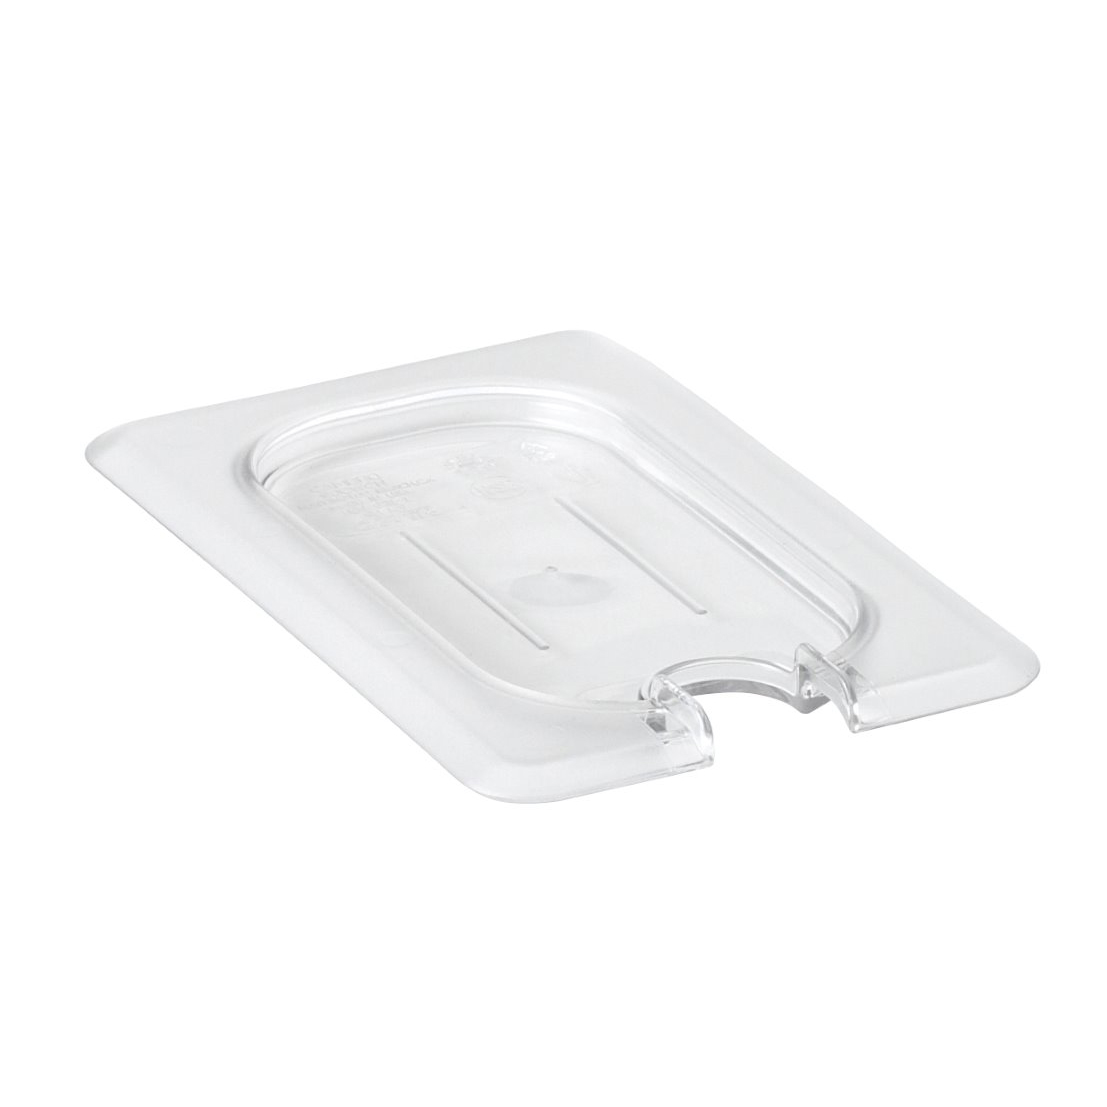 Cambro - Ninth 1/9 Size Food Pan Cover W/Notch Clear Cold | Public Kitchen Supply